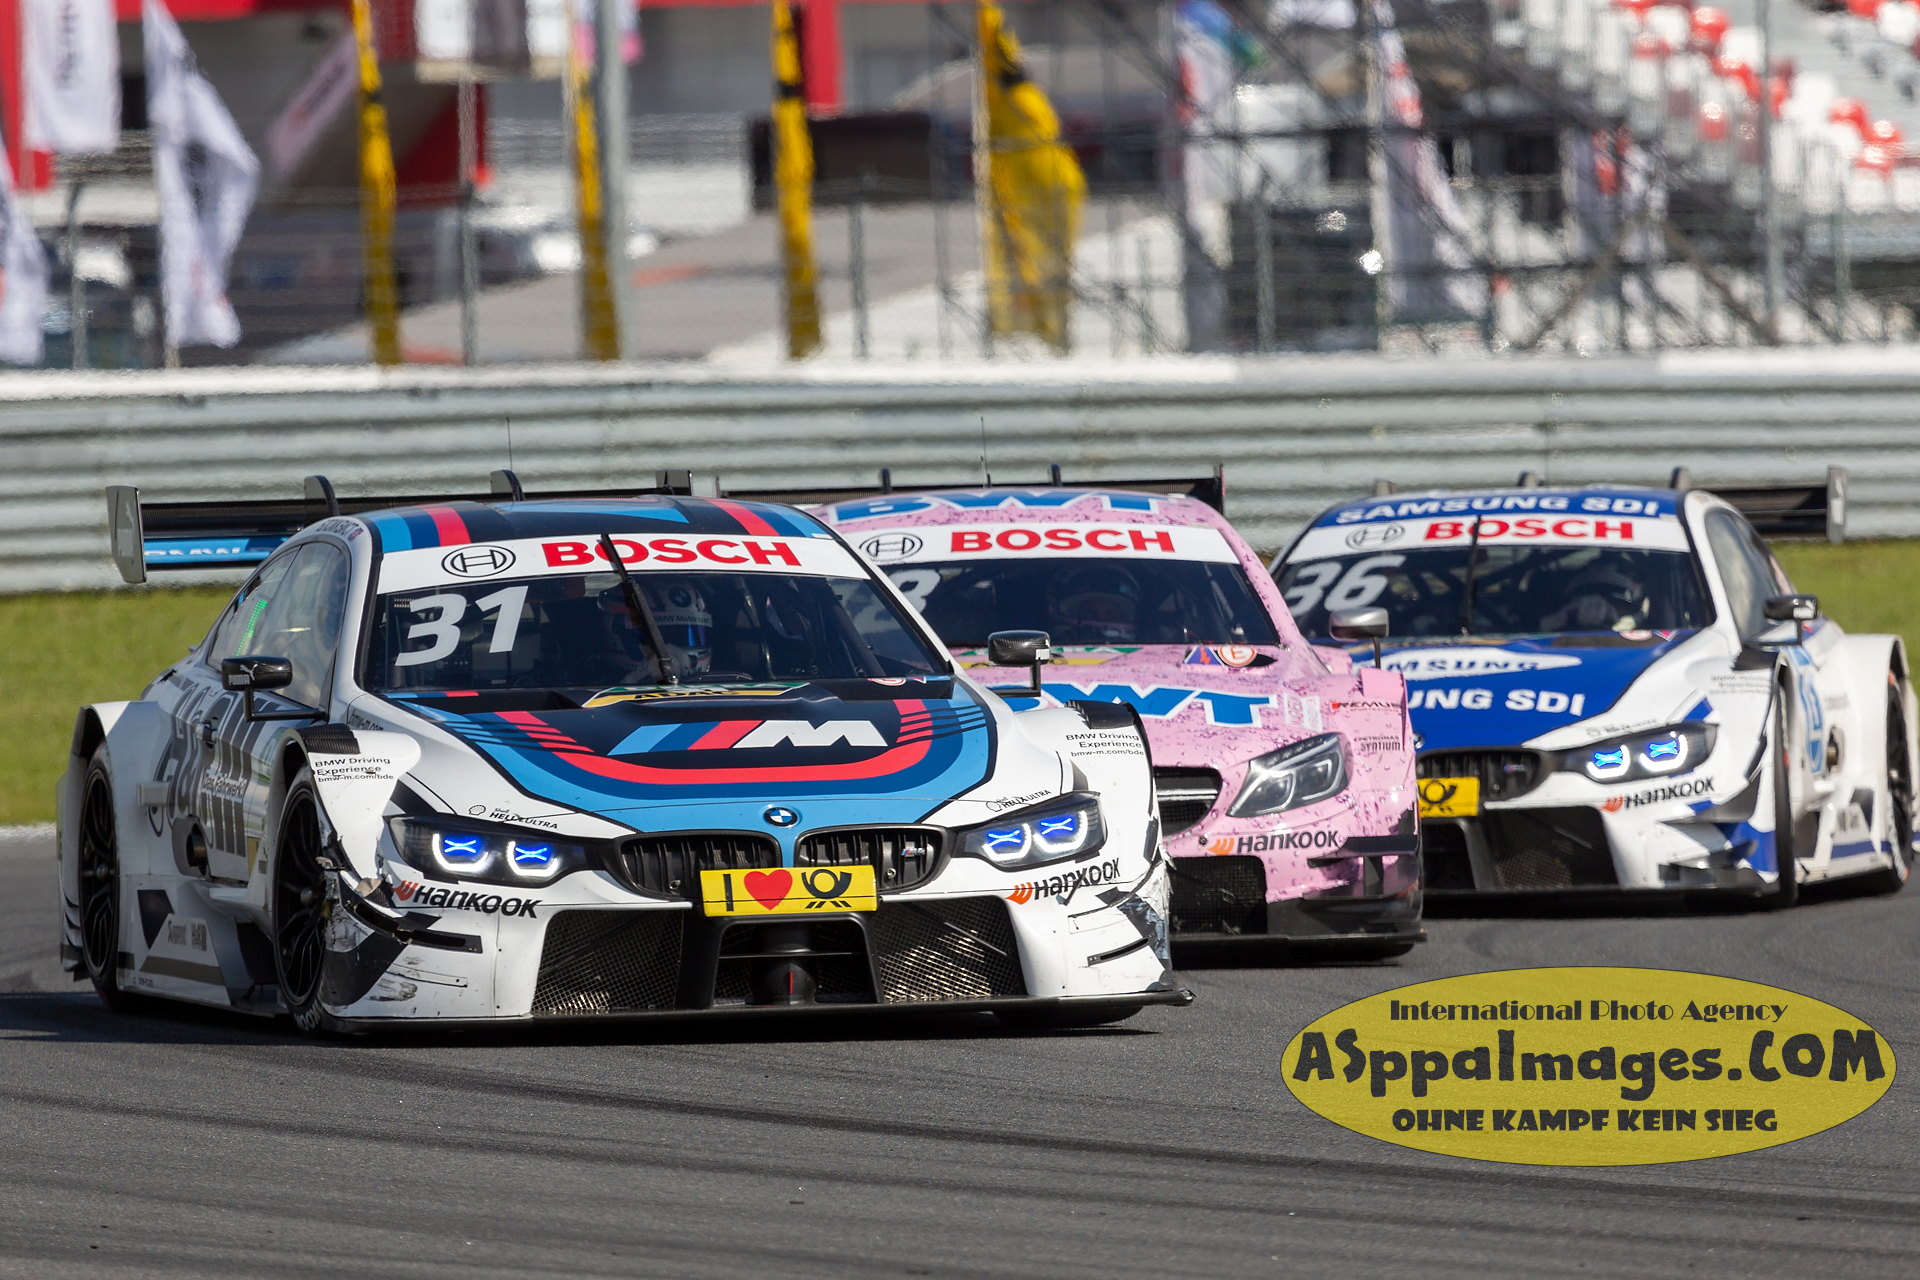 144.2017.DTM.Russian.Stage.Round.5.Moscow.Raceway.BMW.Team.RMG.ASppaImages.COM by alseryogin.